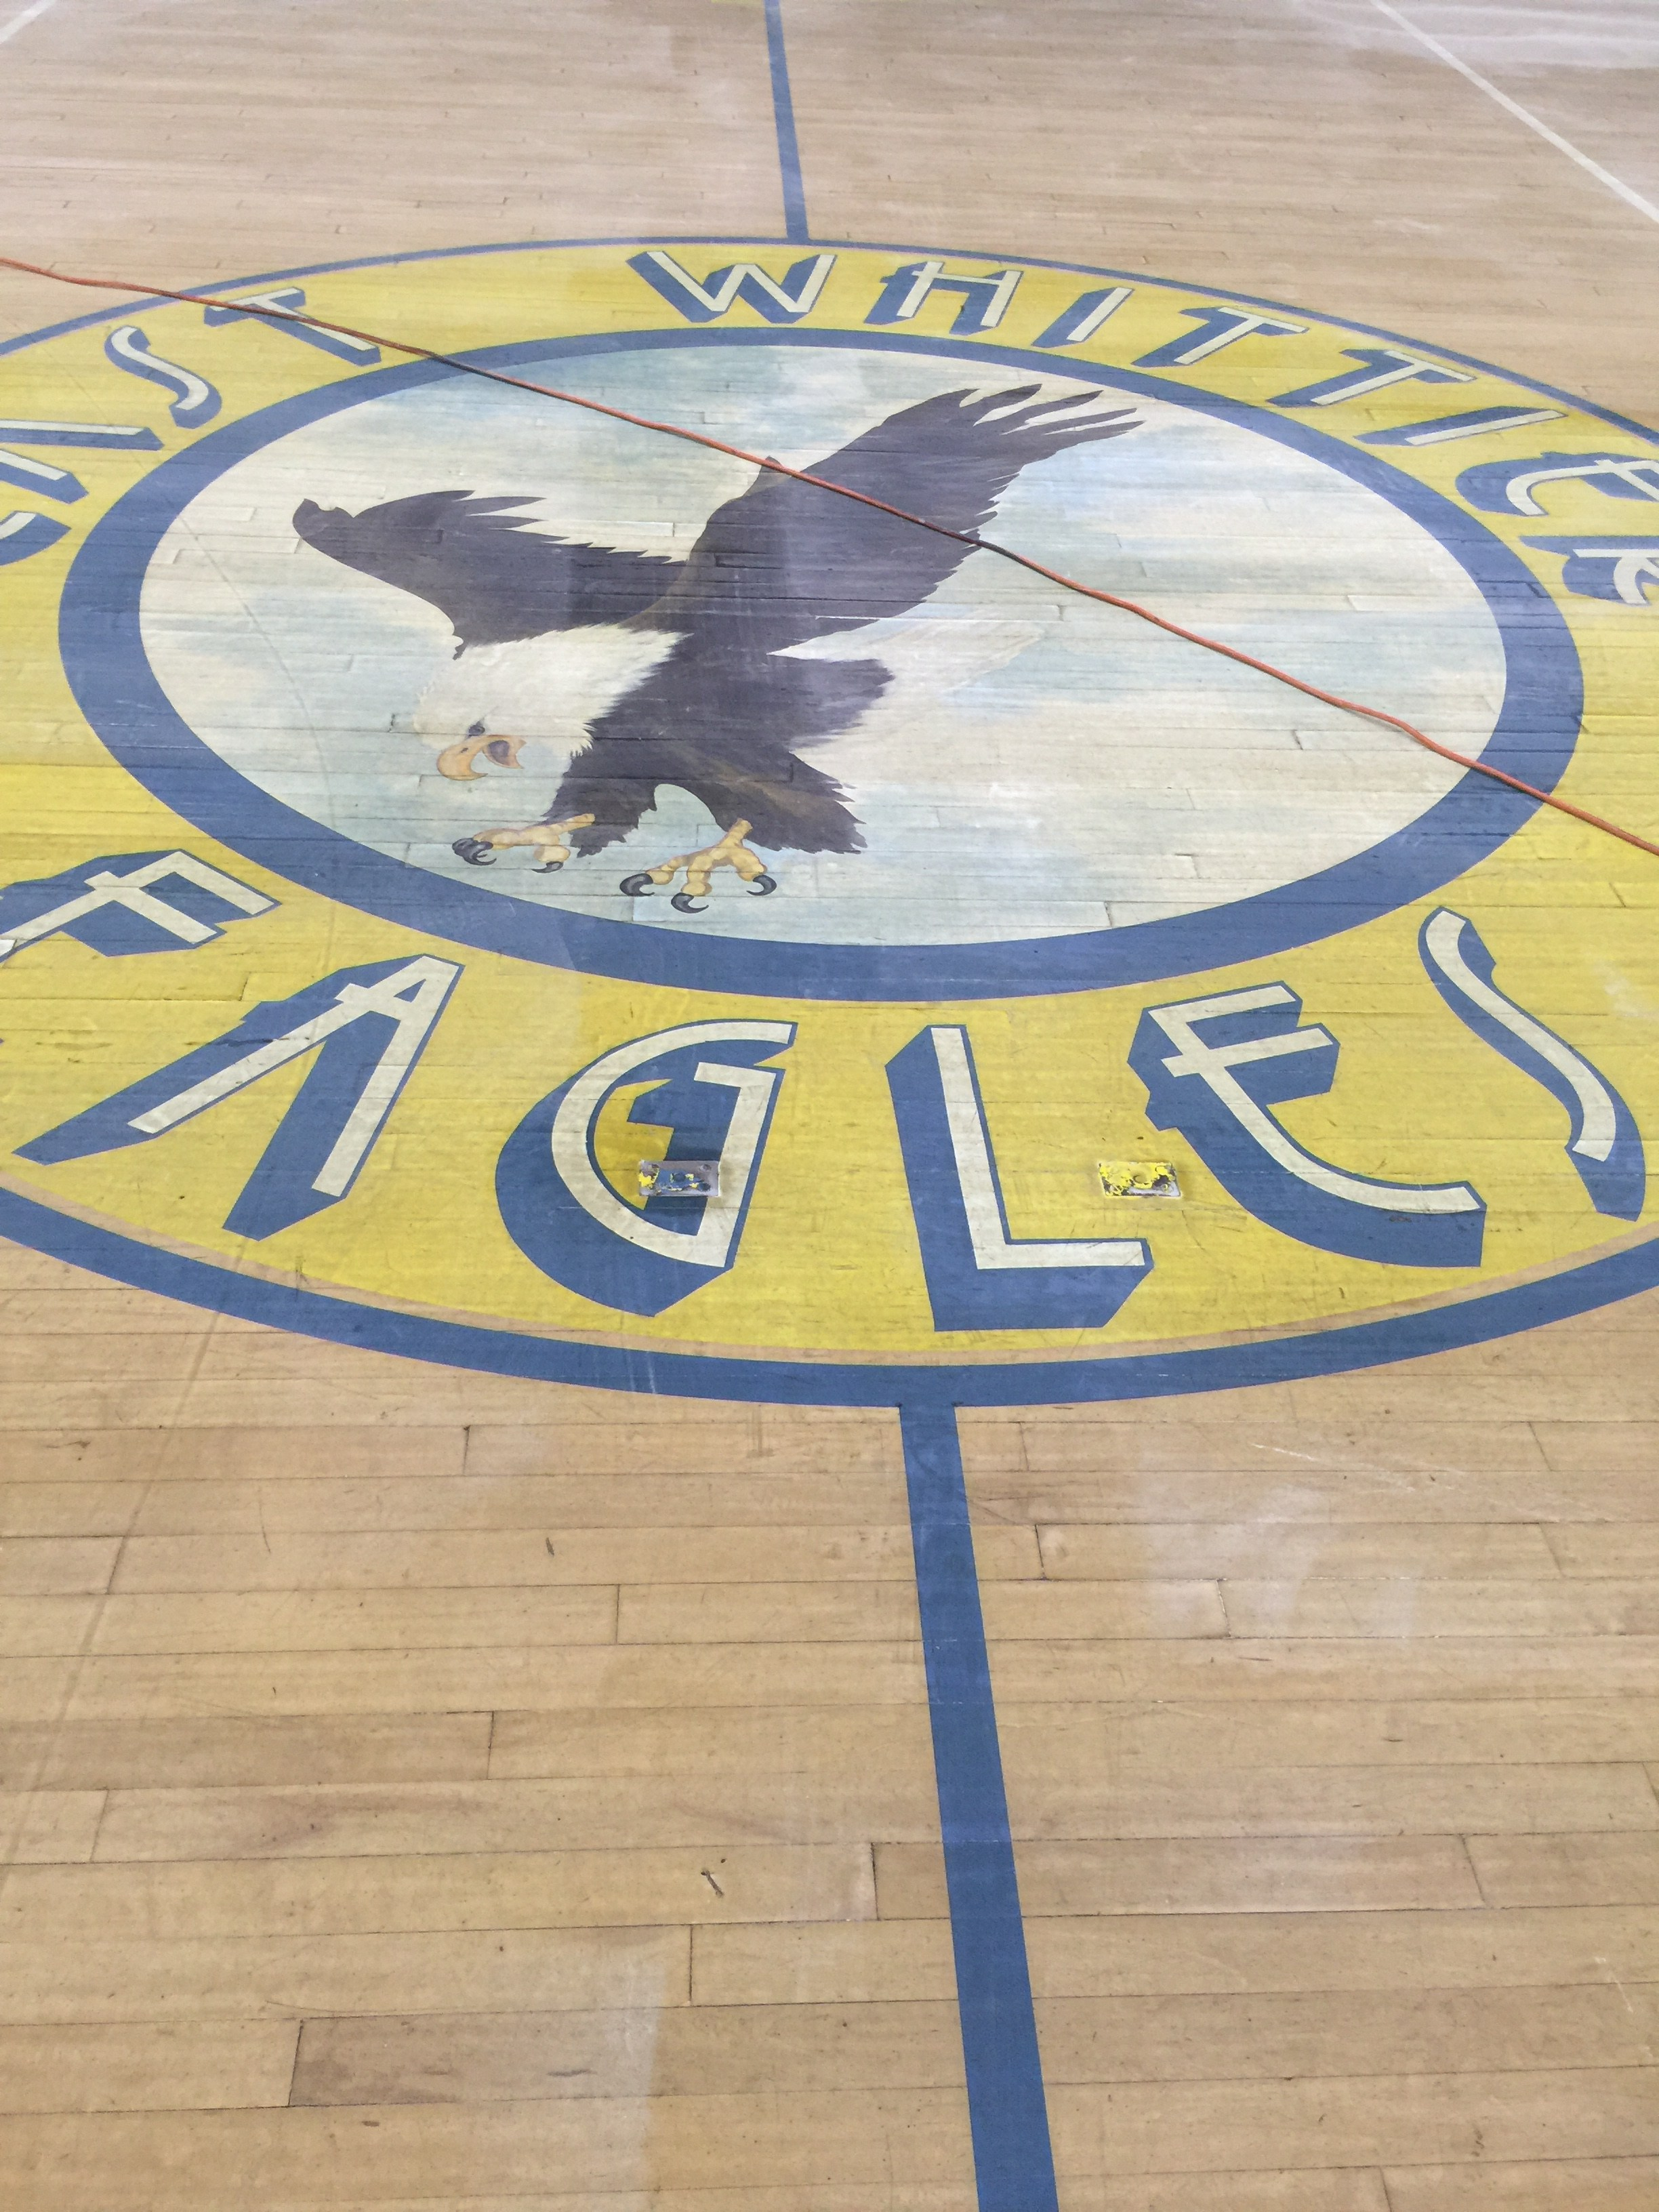 East Whittier Middle School logo on gym floor prior to waxing.